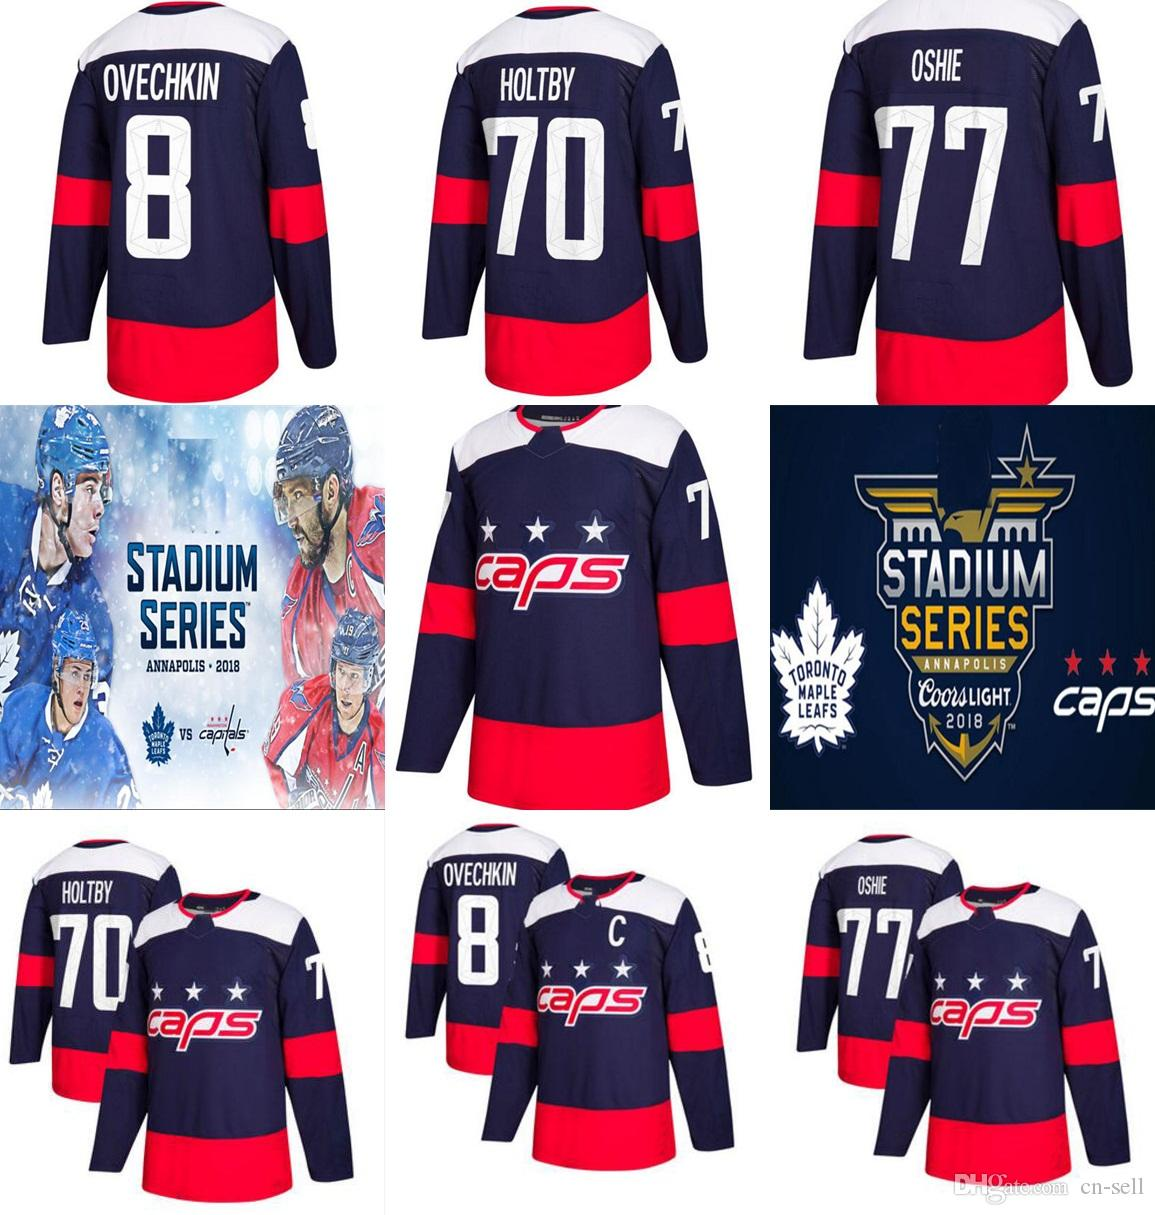 Mens Womens Kids Braden Holtby 2018 Stadium Series Hockey Jerseys  Washington Capitals Leafs Alex Ovechkin Brooks Orpik Connolly Smith-Pelly 8  Alex Ovechkin ... 6af7c7647